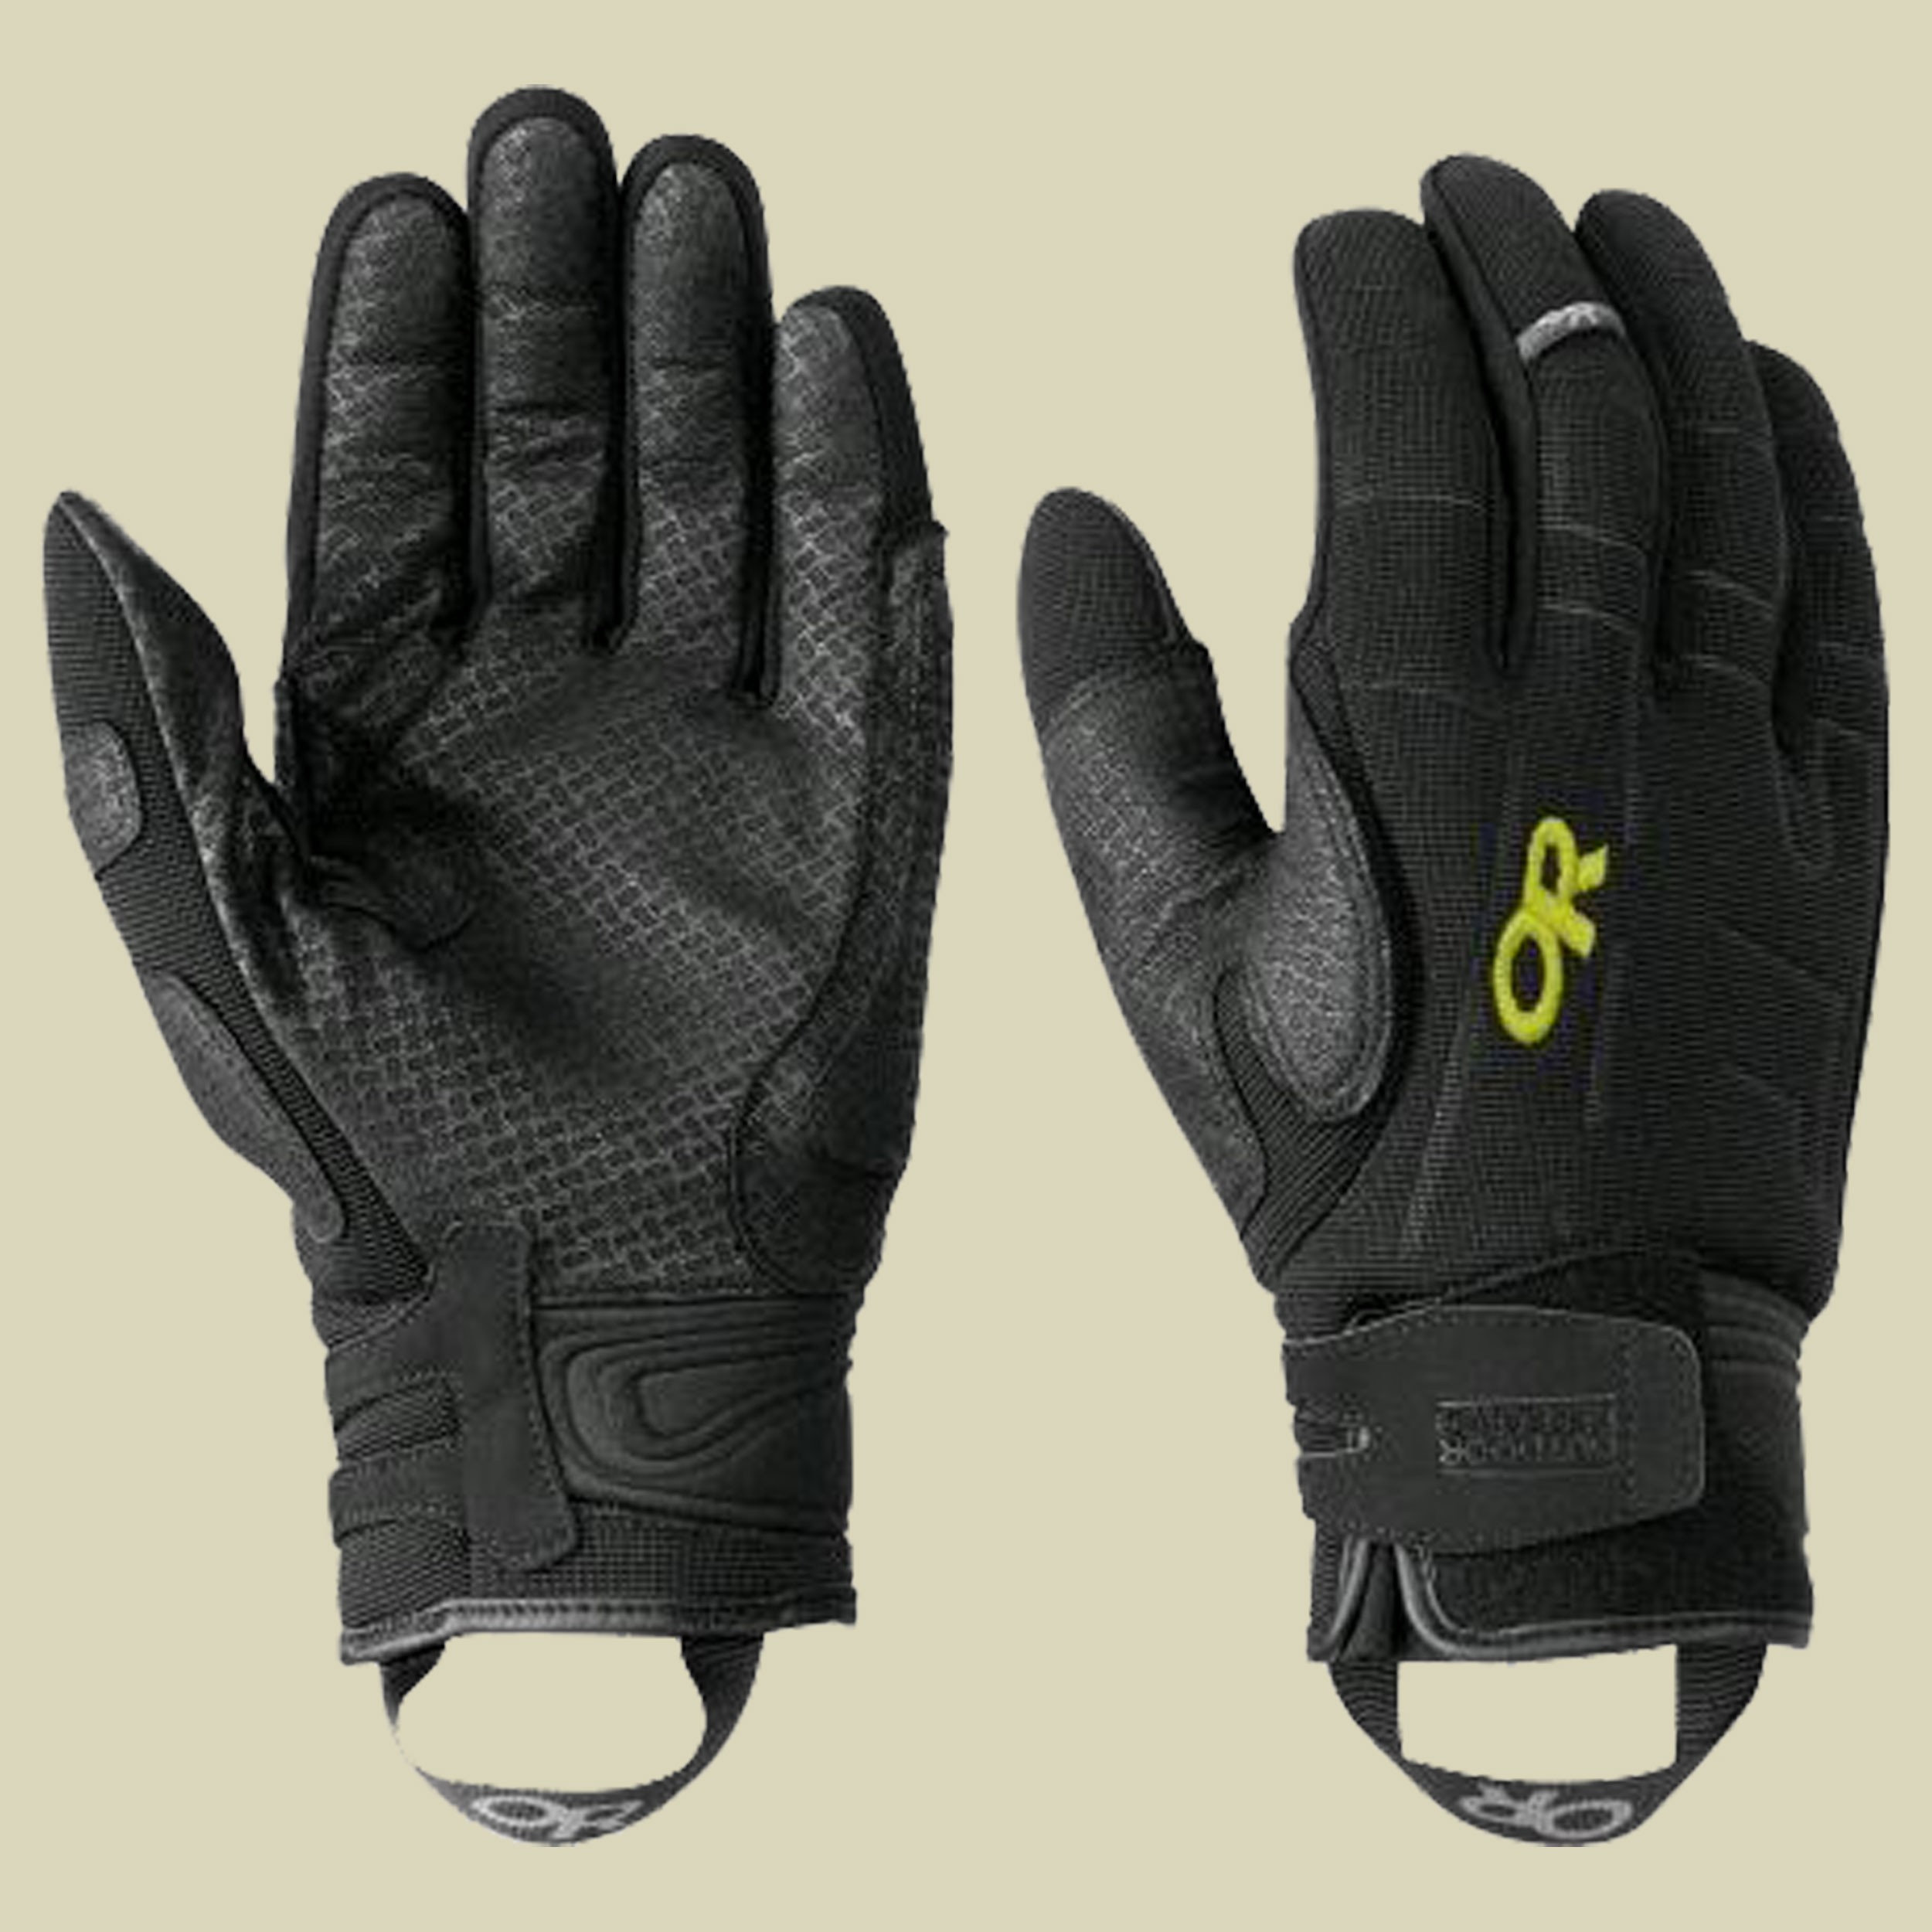 Alibi II Gloves